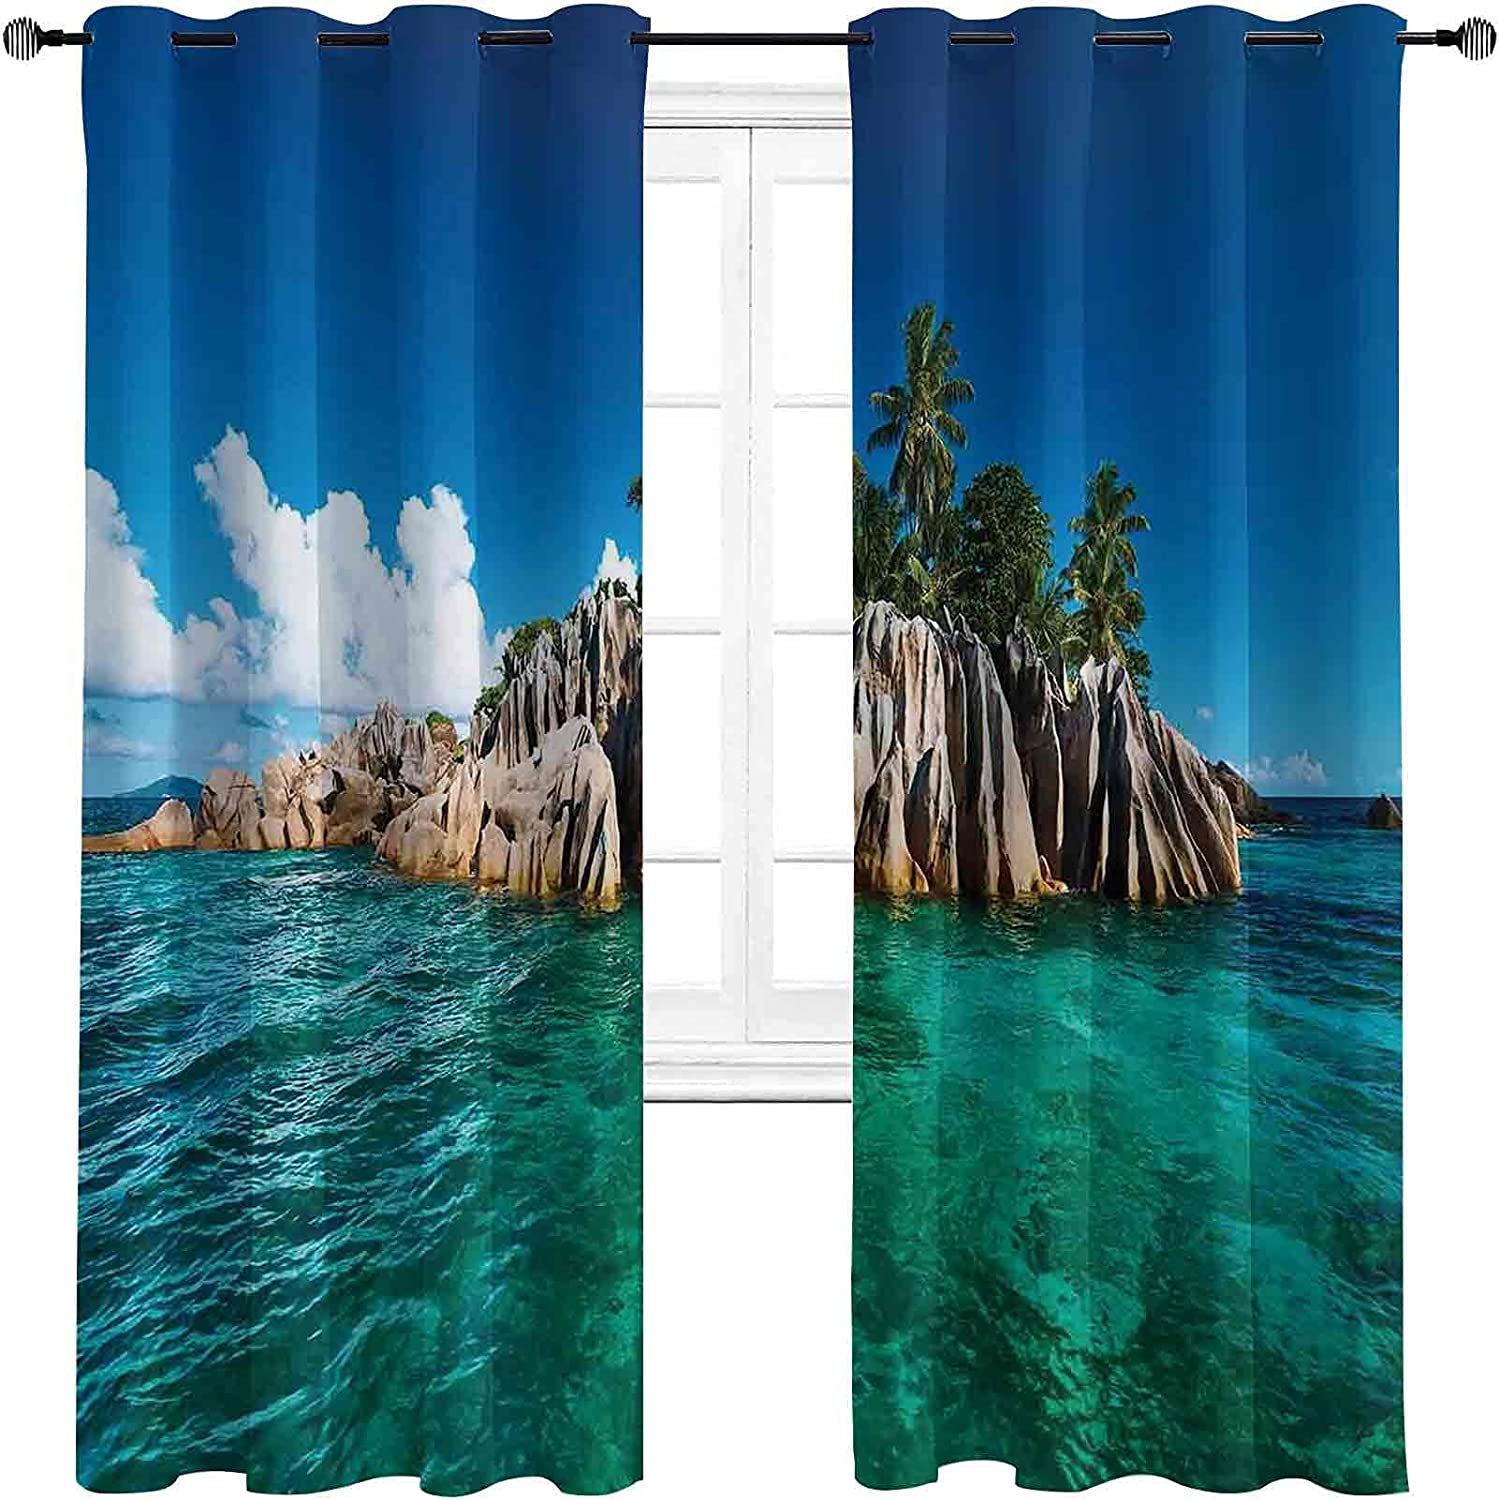 Island San Antonio Mall Bedroom Blackout Curtains Outlet ☆ Free Shipping St. at Pierre Seychelle